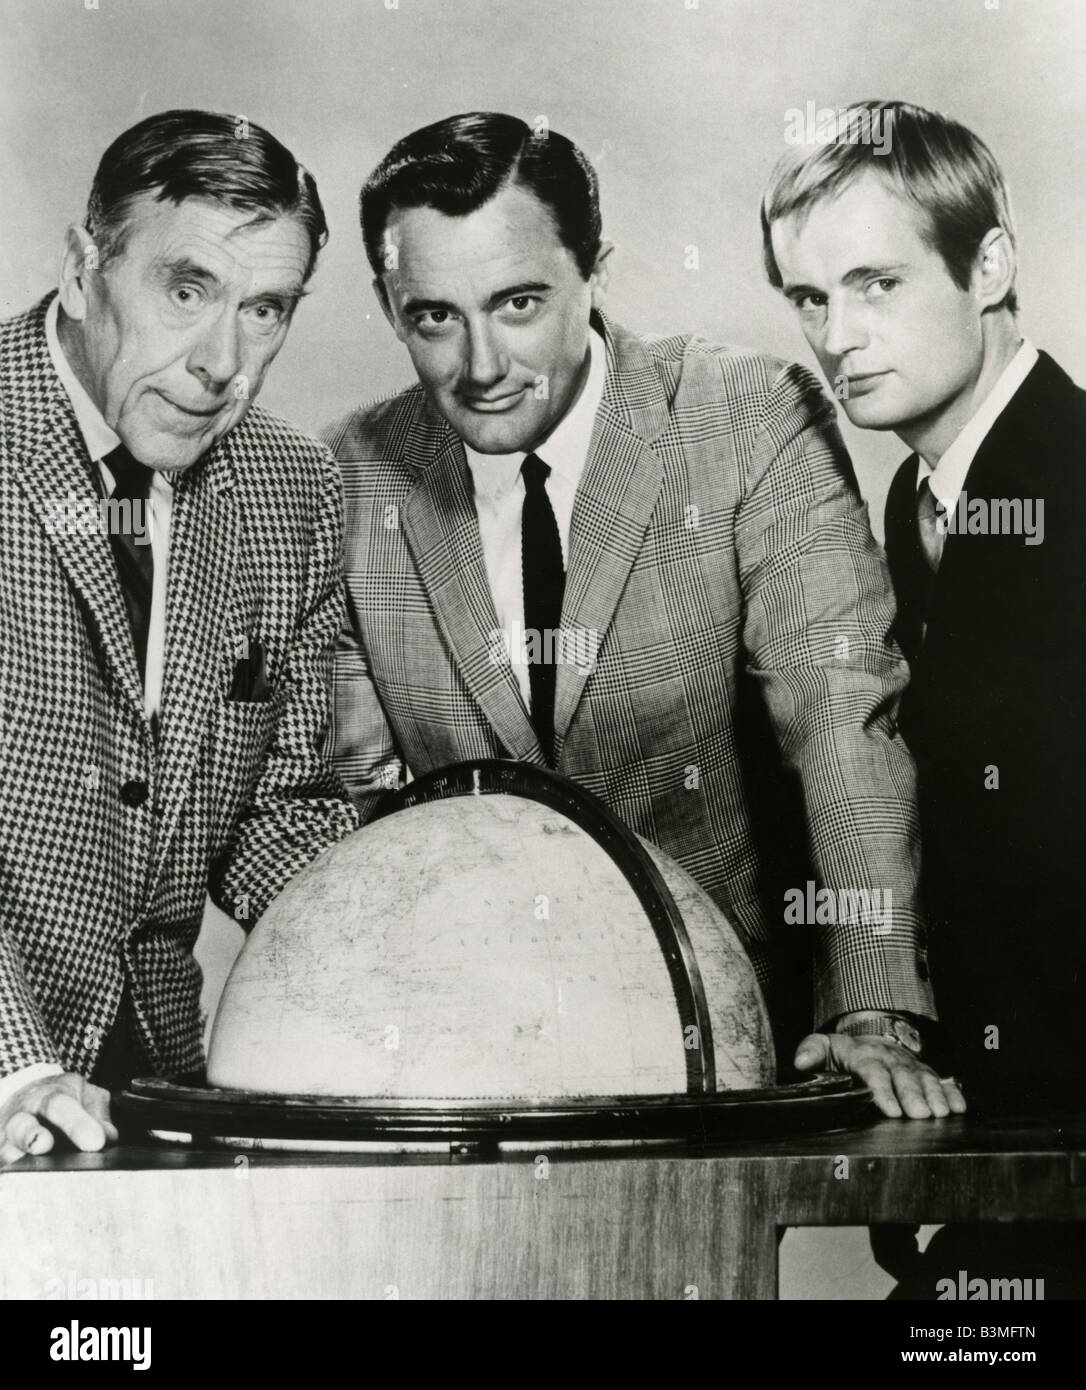 THE MAN FROM U.N.C.L.E.   US NBC Sixties TV series with from left Leo G Carroll, Robert Vaughn  and  David McCallum - Stock Image